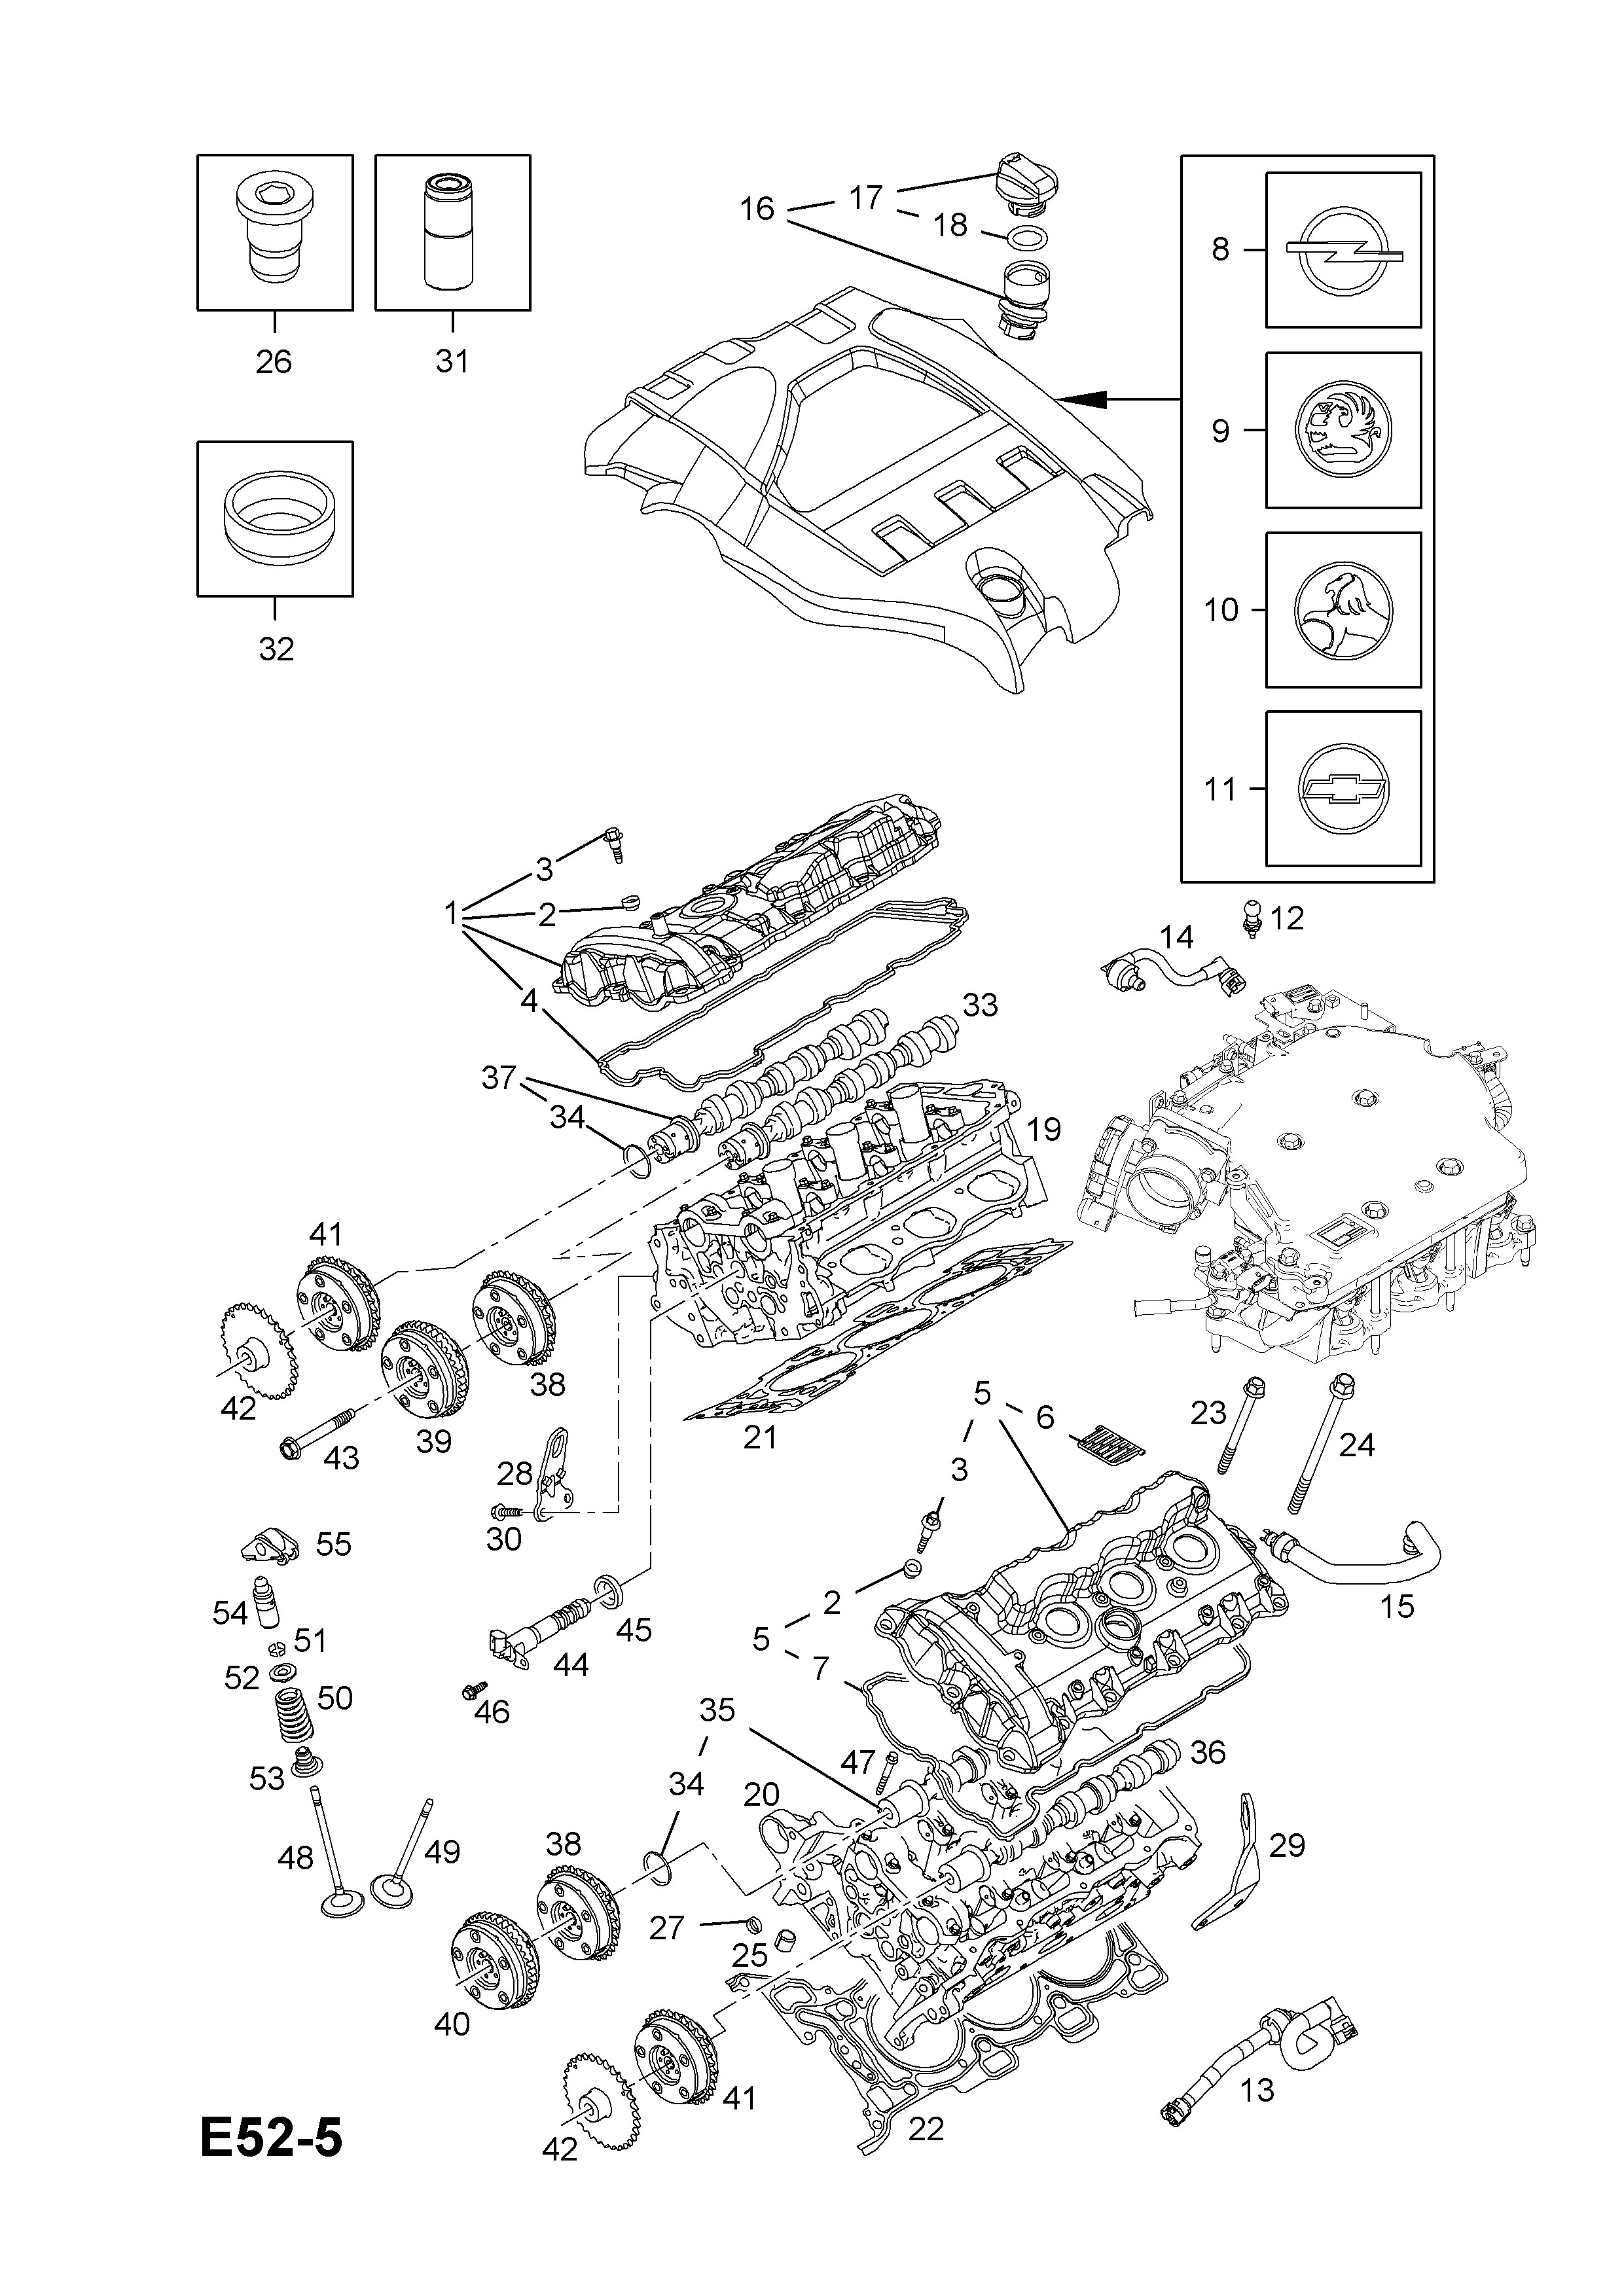 valve timing diagram for petrol engine opel vectra c 2002